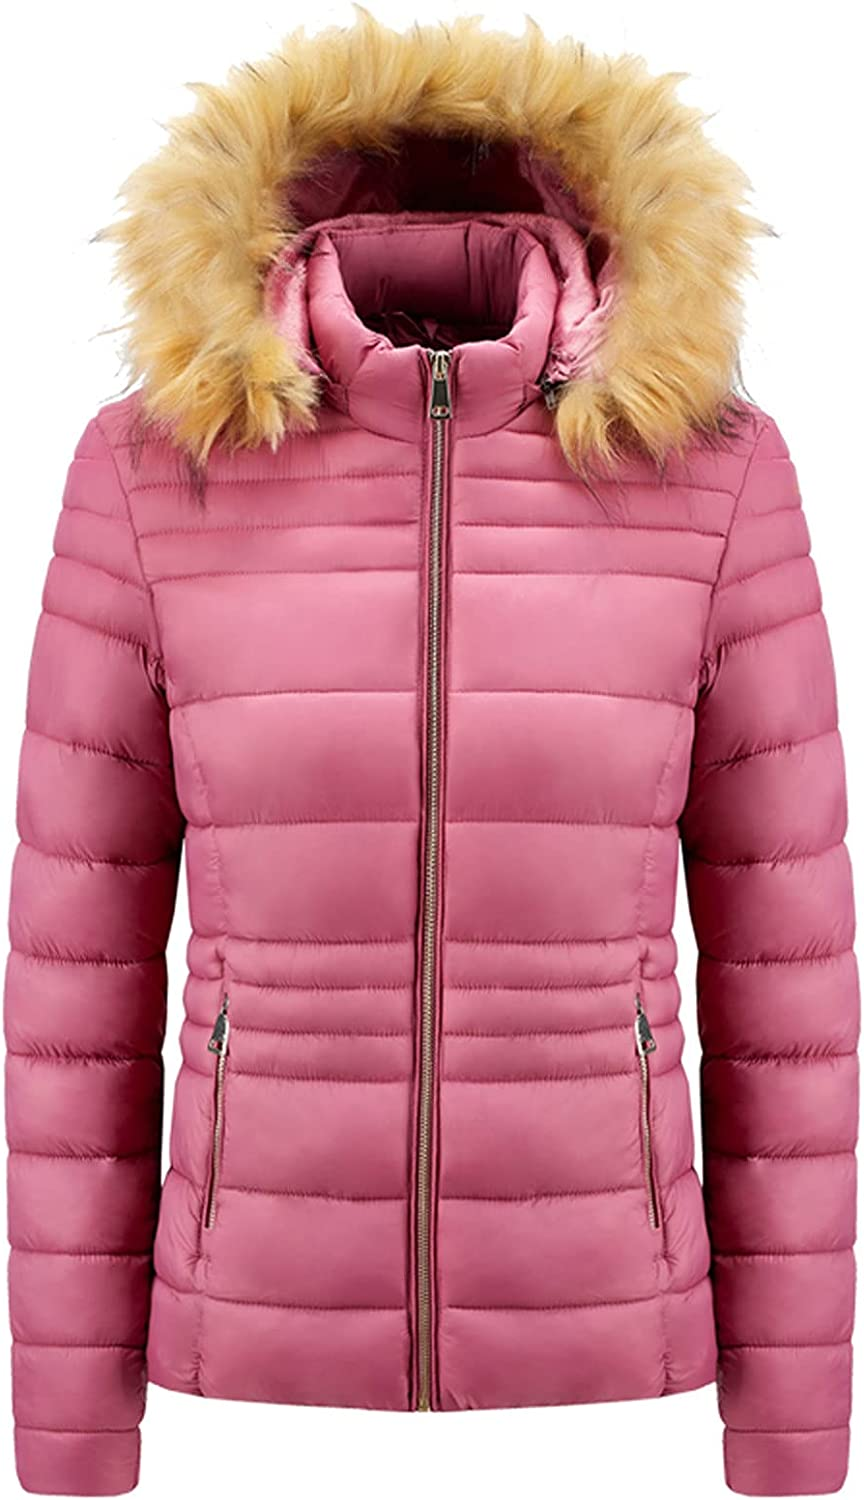 Down Jackets for Women Winter Cheap super special price Warm Coat Fit Quilted Indianapolis Mall Puffer Slim